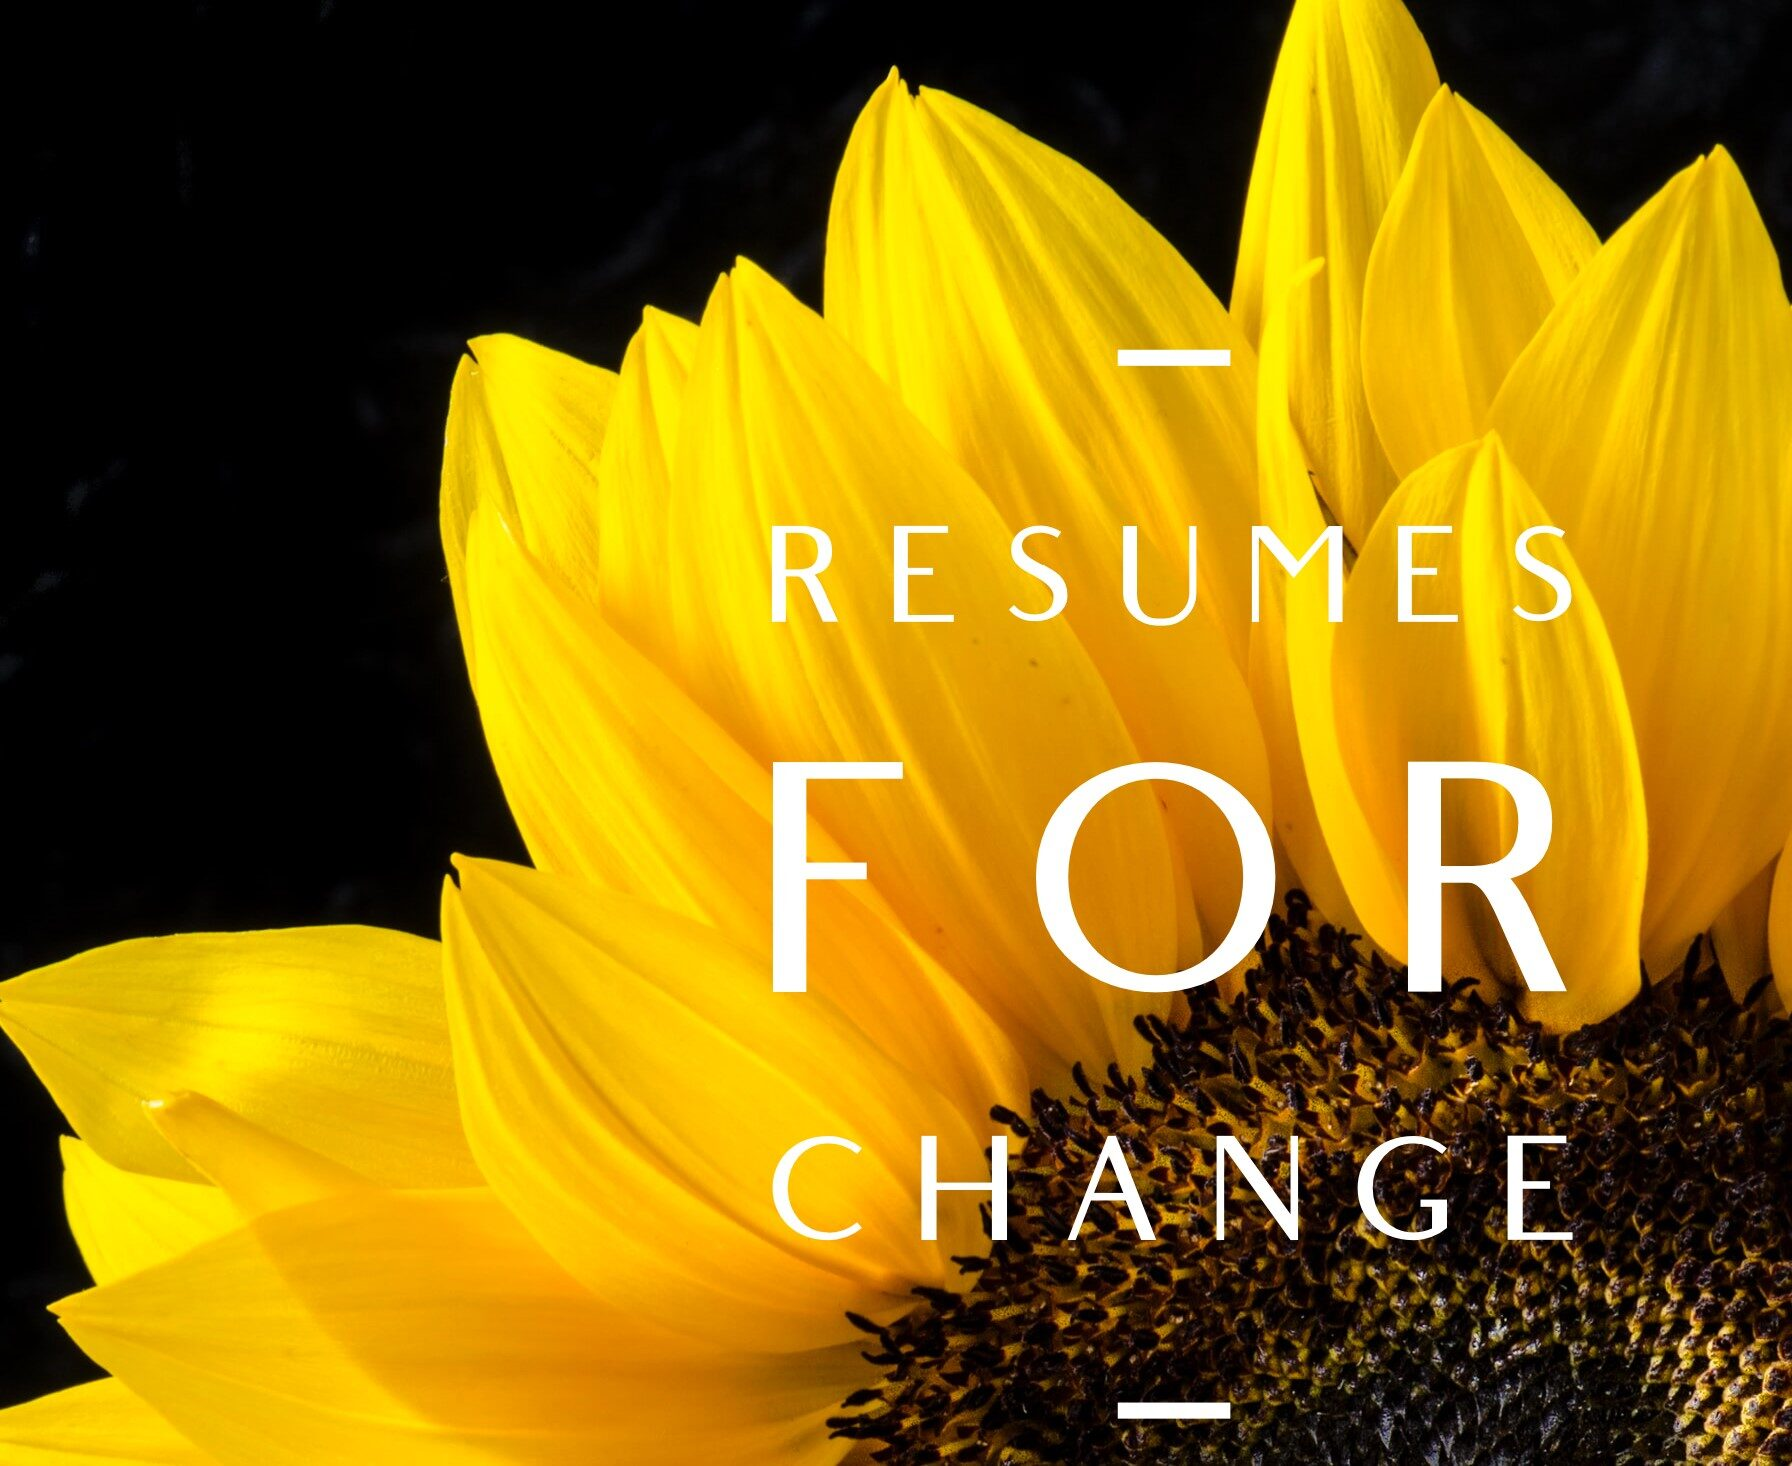 Resumes for Change